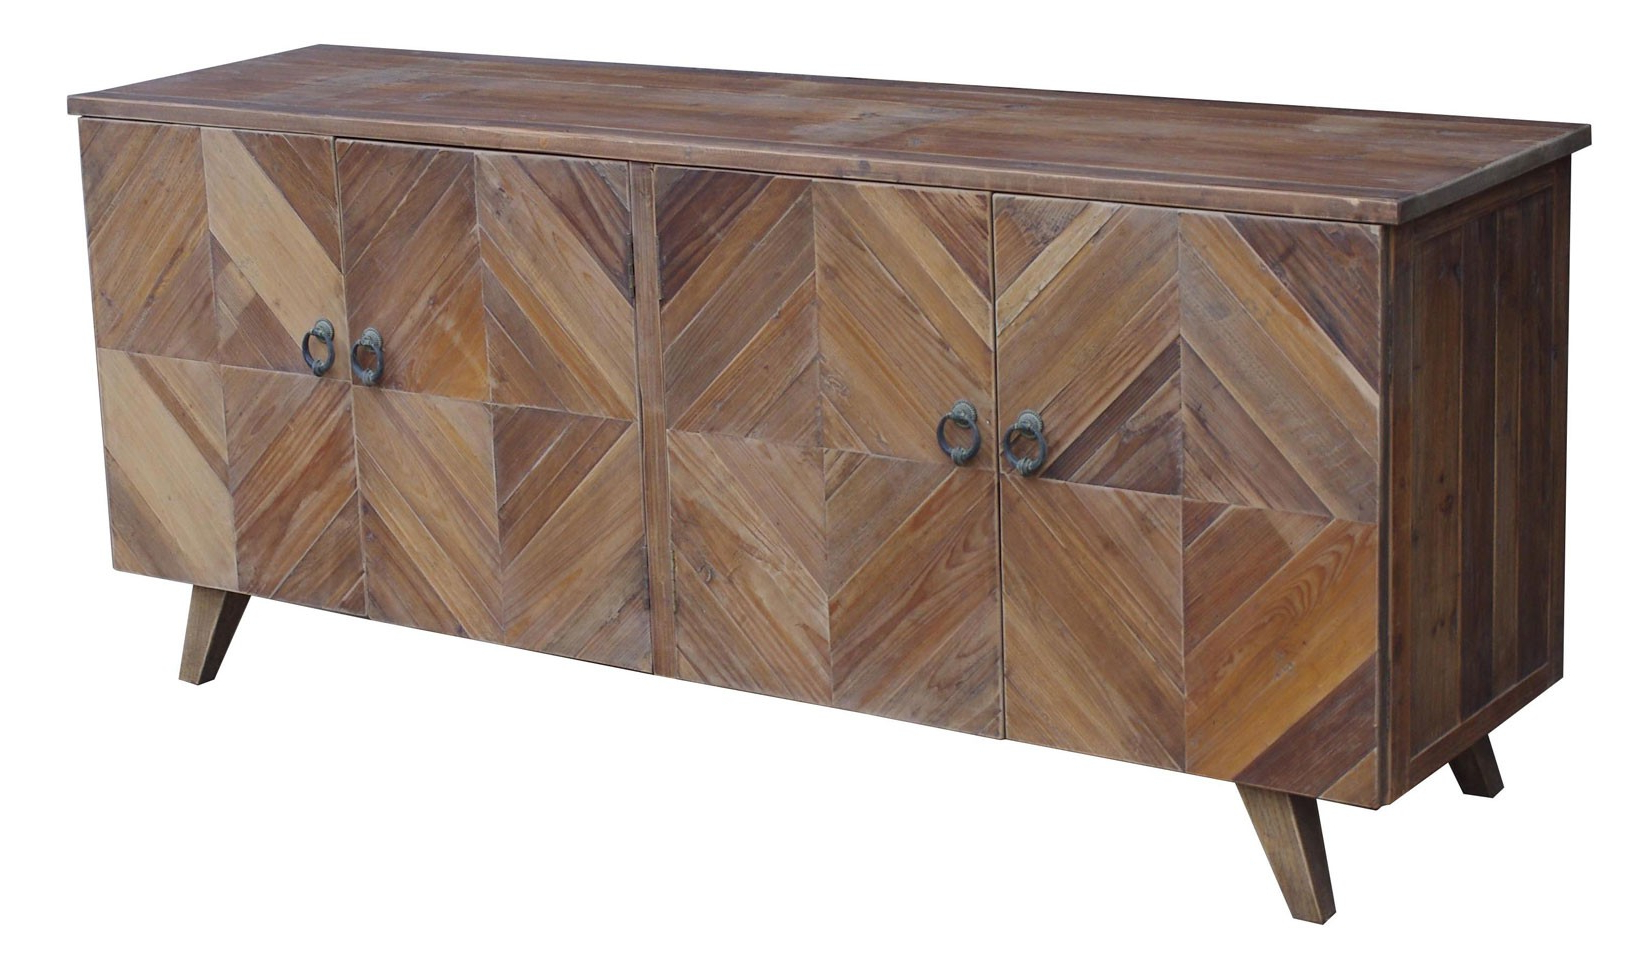 Jj 1728 Reclaimed Pine 4 Door Modern Sideboard Buffet With Regard To Well Liked Reclaimed Pine 4 Door Sideboards (Gallery 5 of 20)